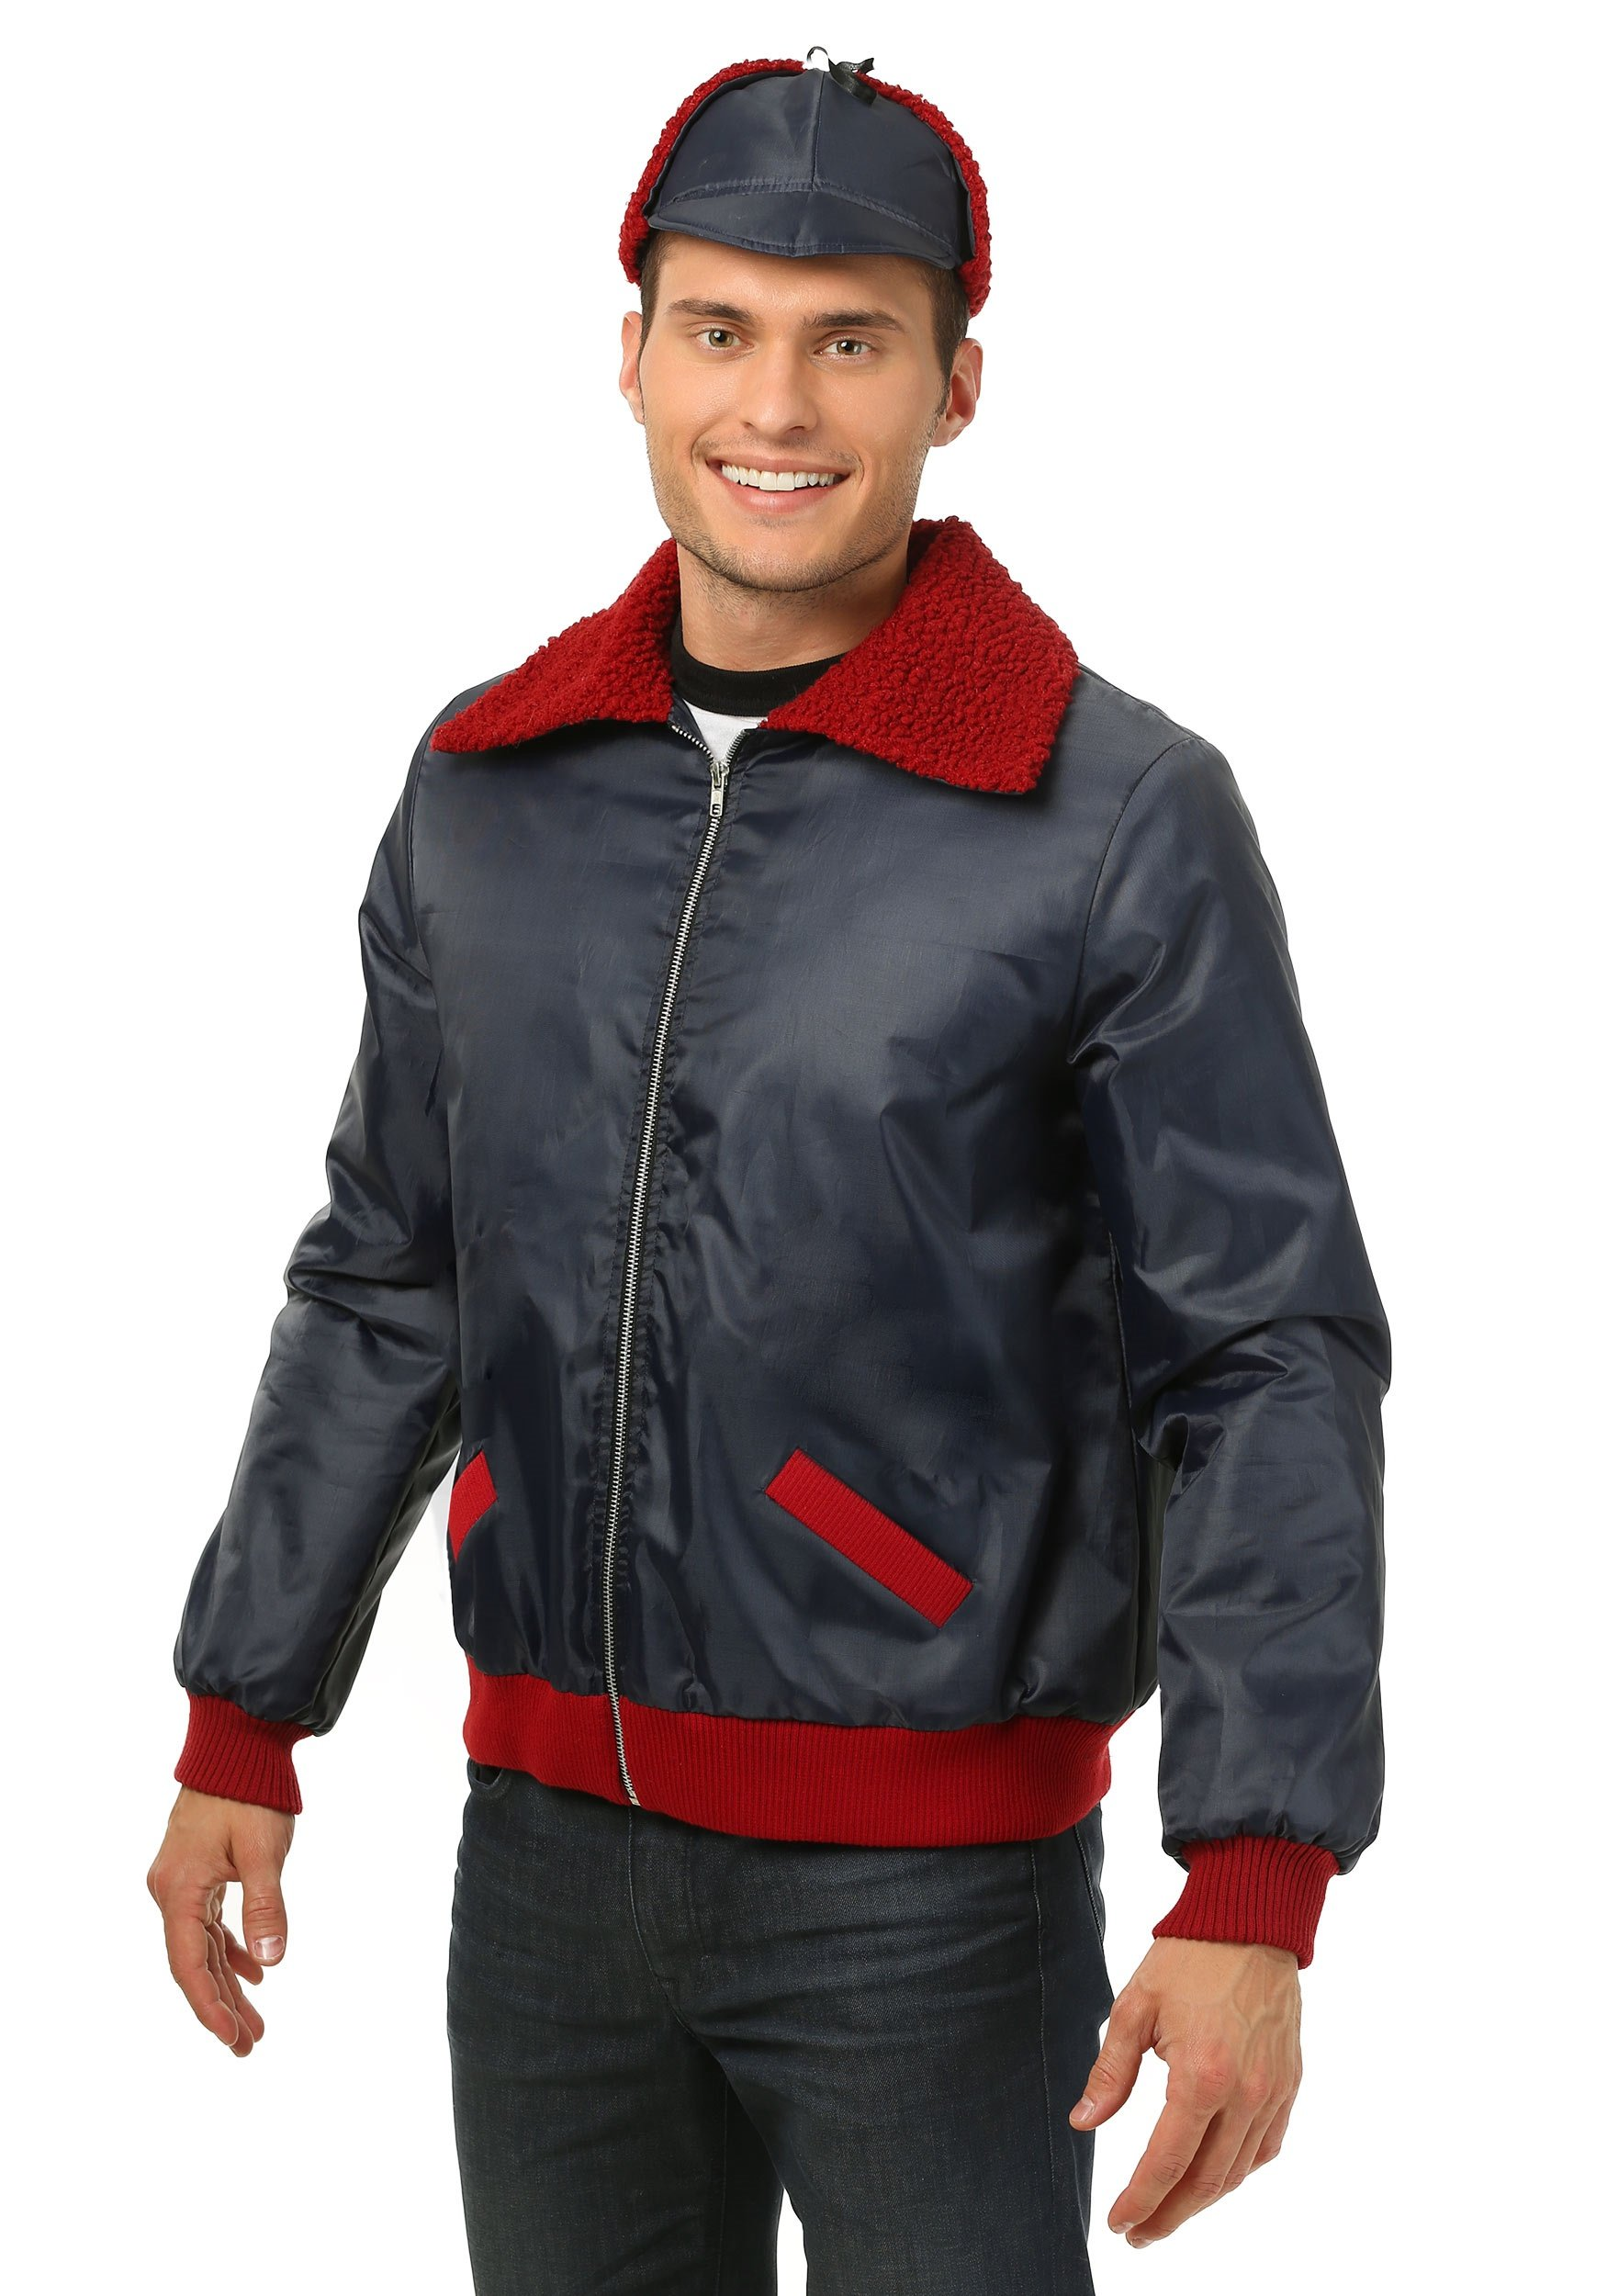 The Simpsons Mr. Plow Jacket - M